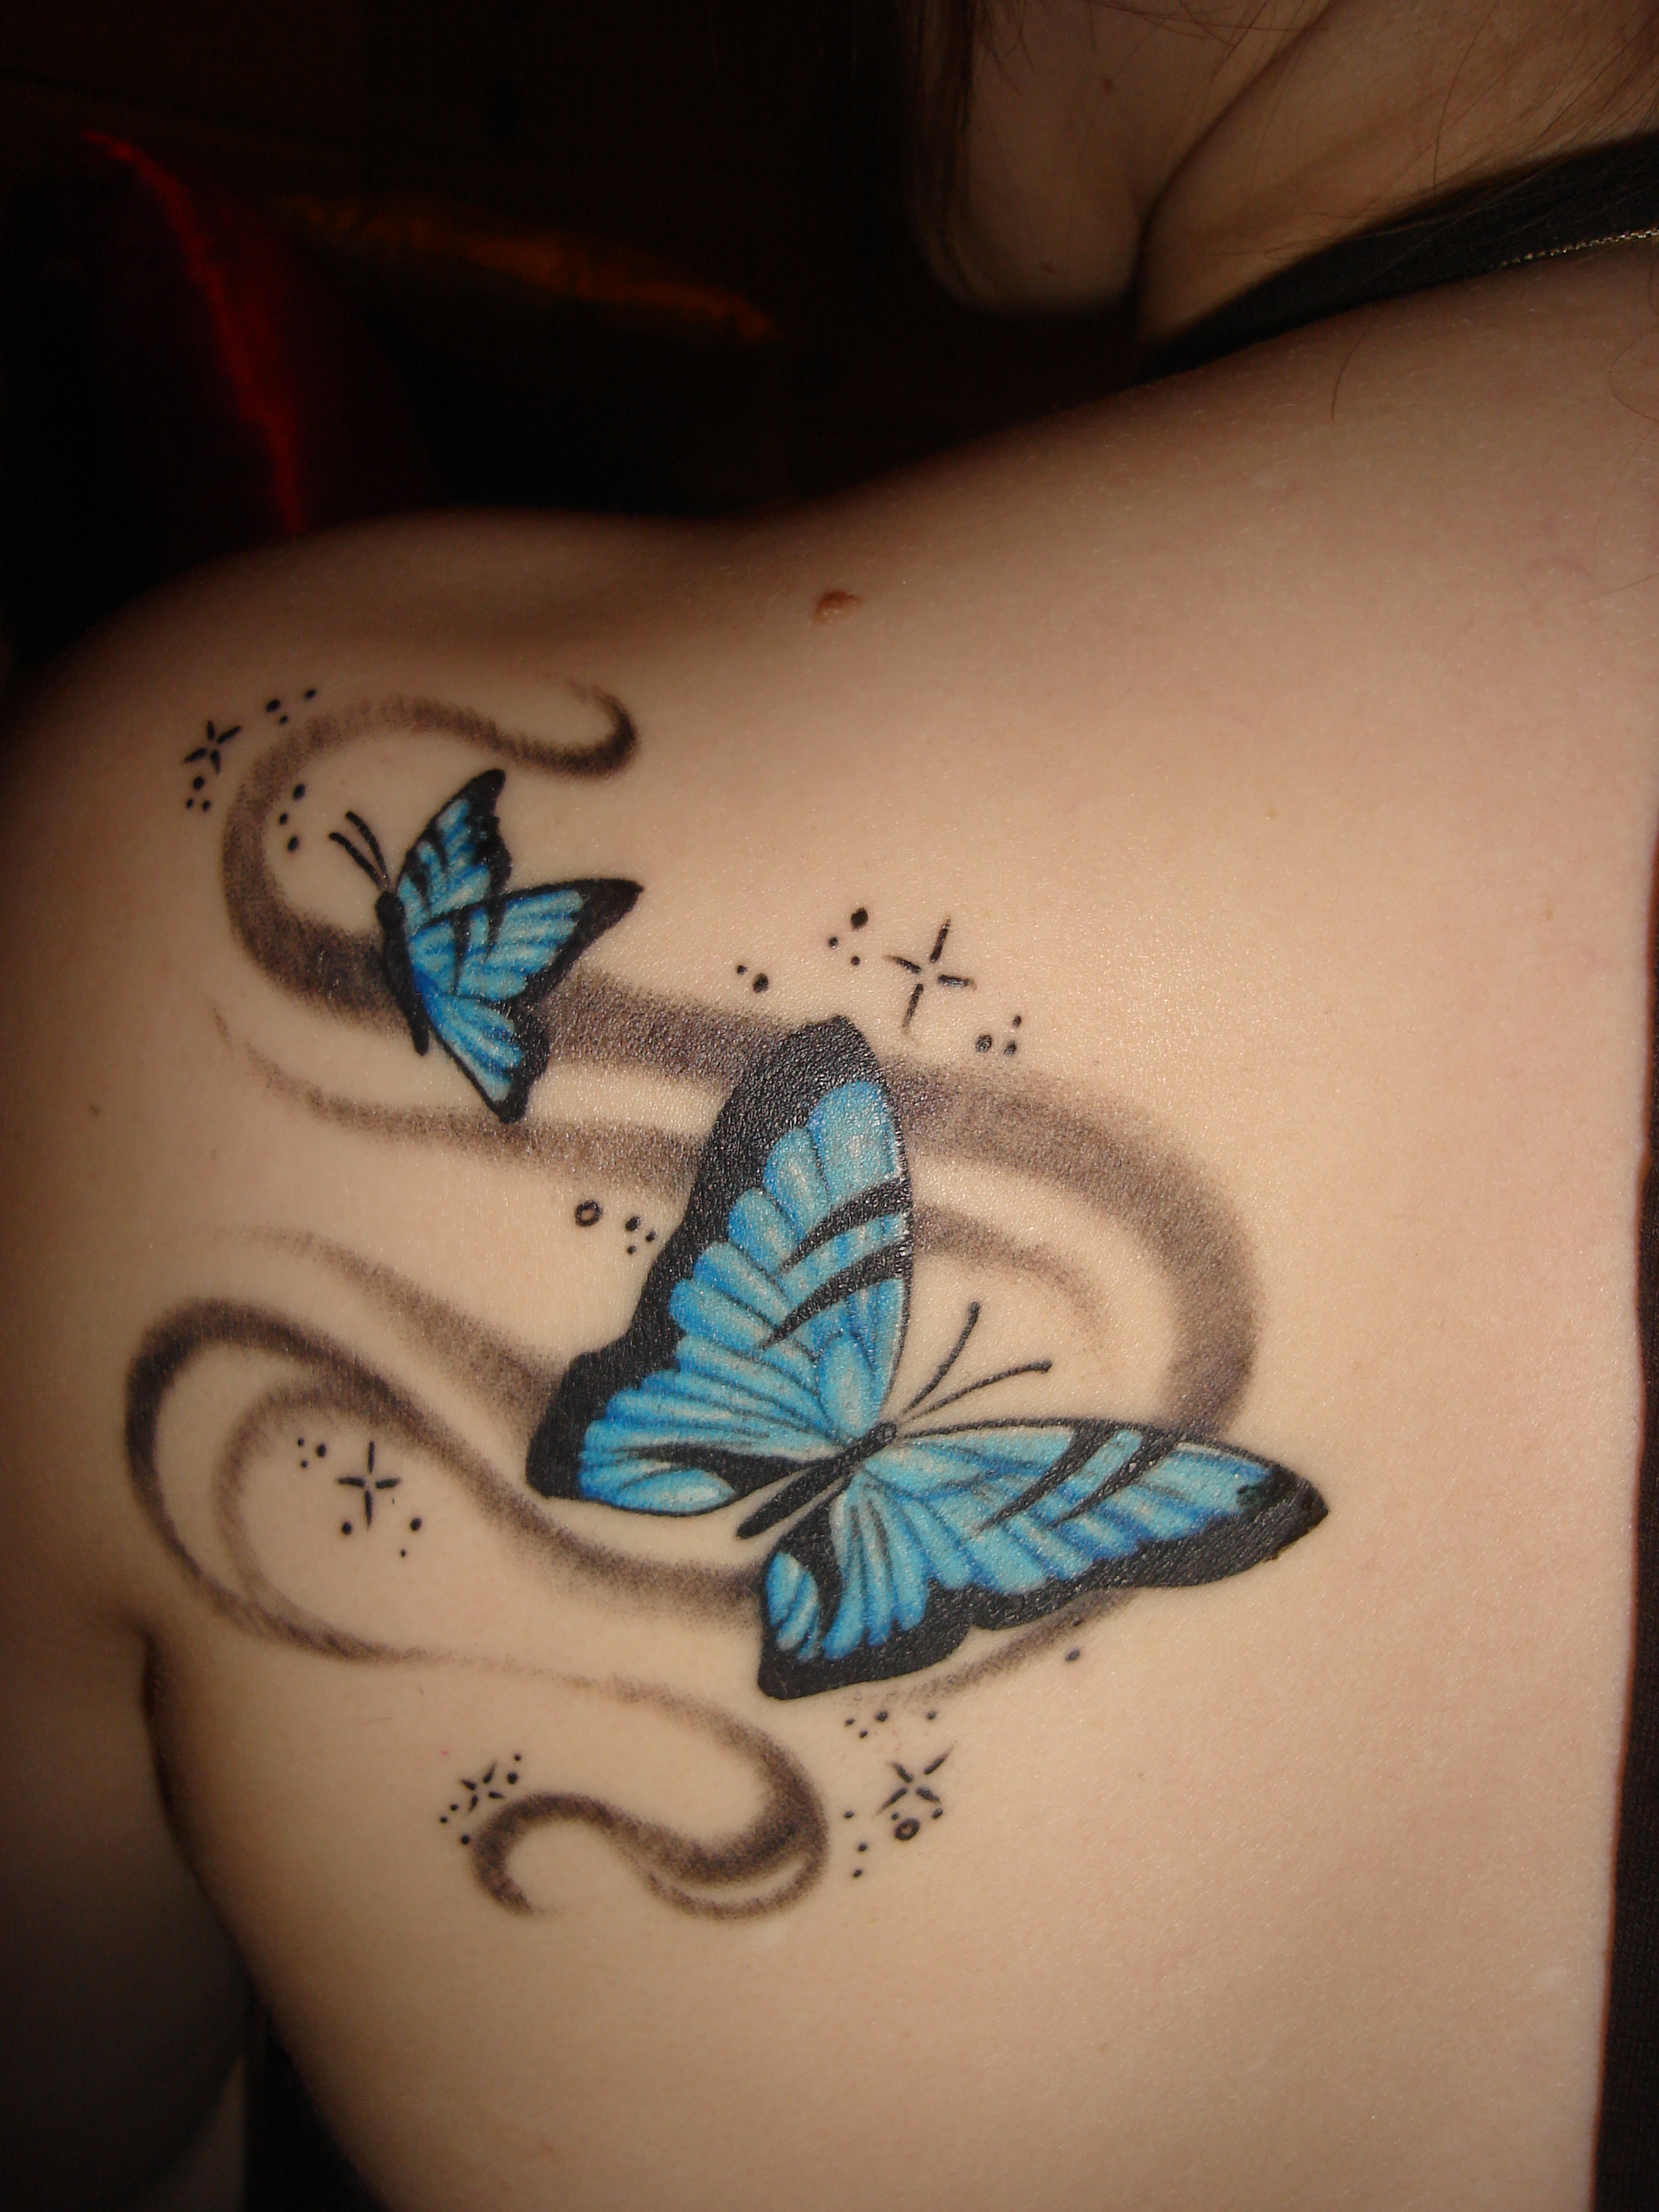 butterfly tattoo art tribal tattoos design. Black Bedroom Furniture Sets. Home Design Ideas